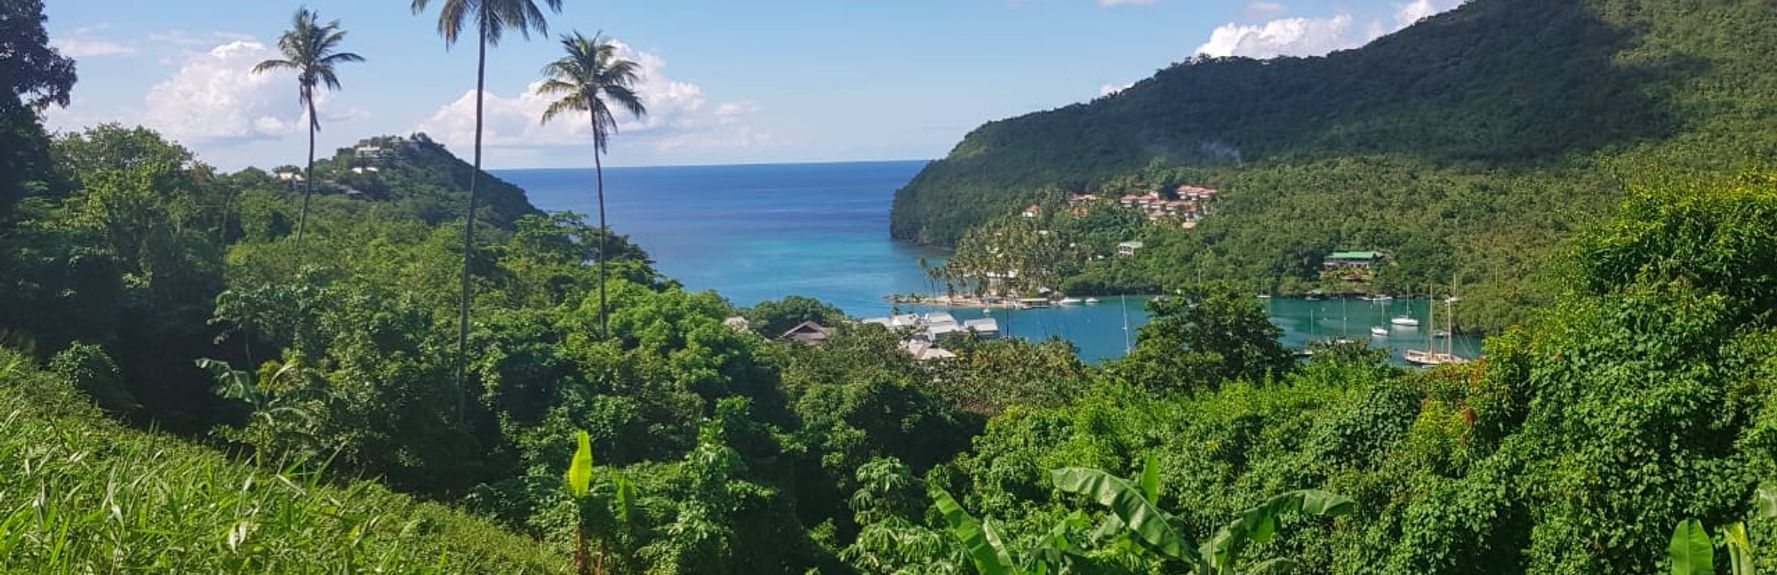 Reduit Beach, Gros Islet, St. Lucia